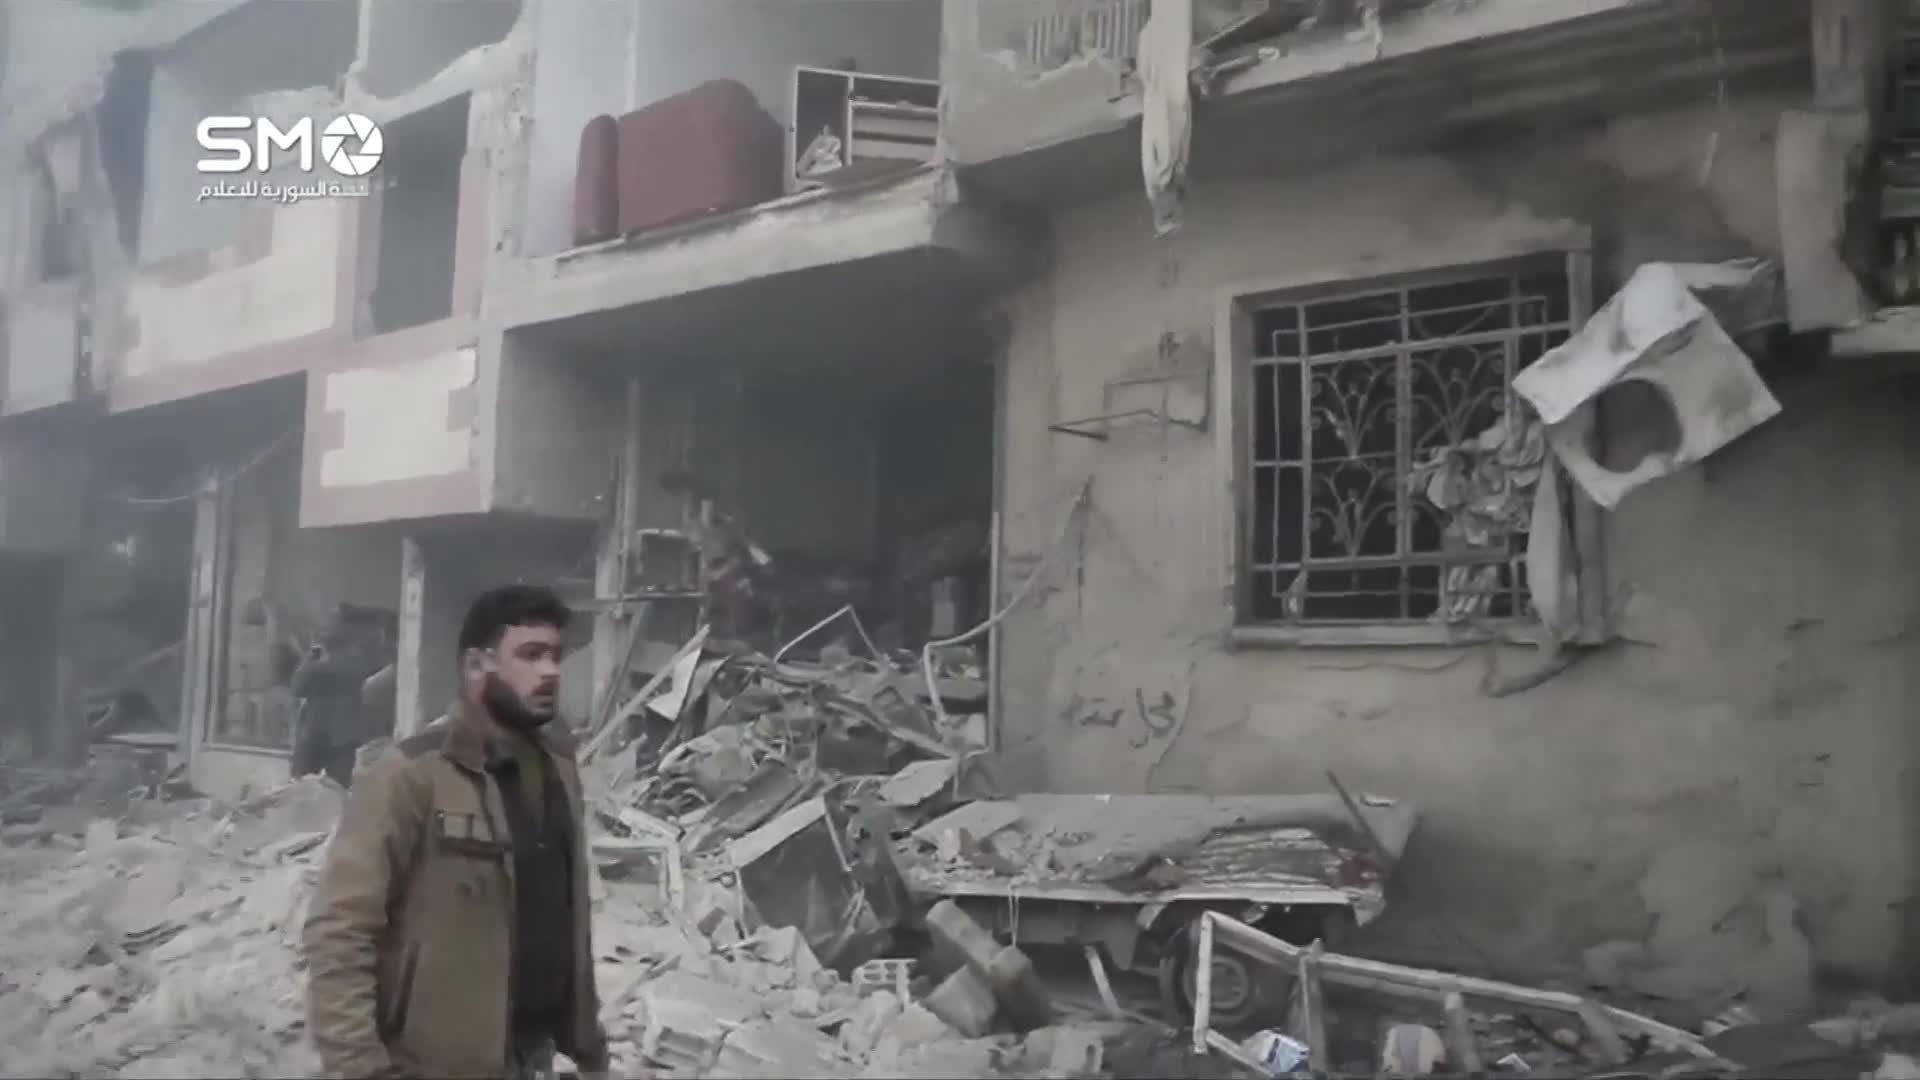 Syrians rescued from rubble following Douma air strike - social media video